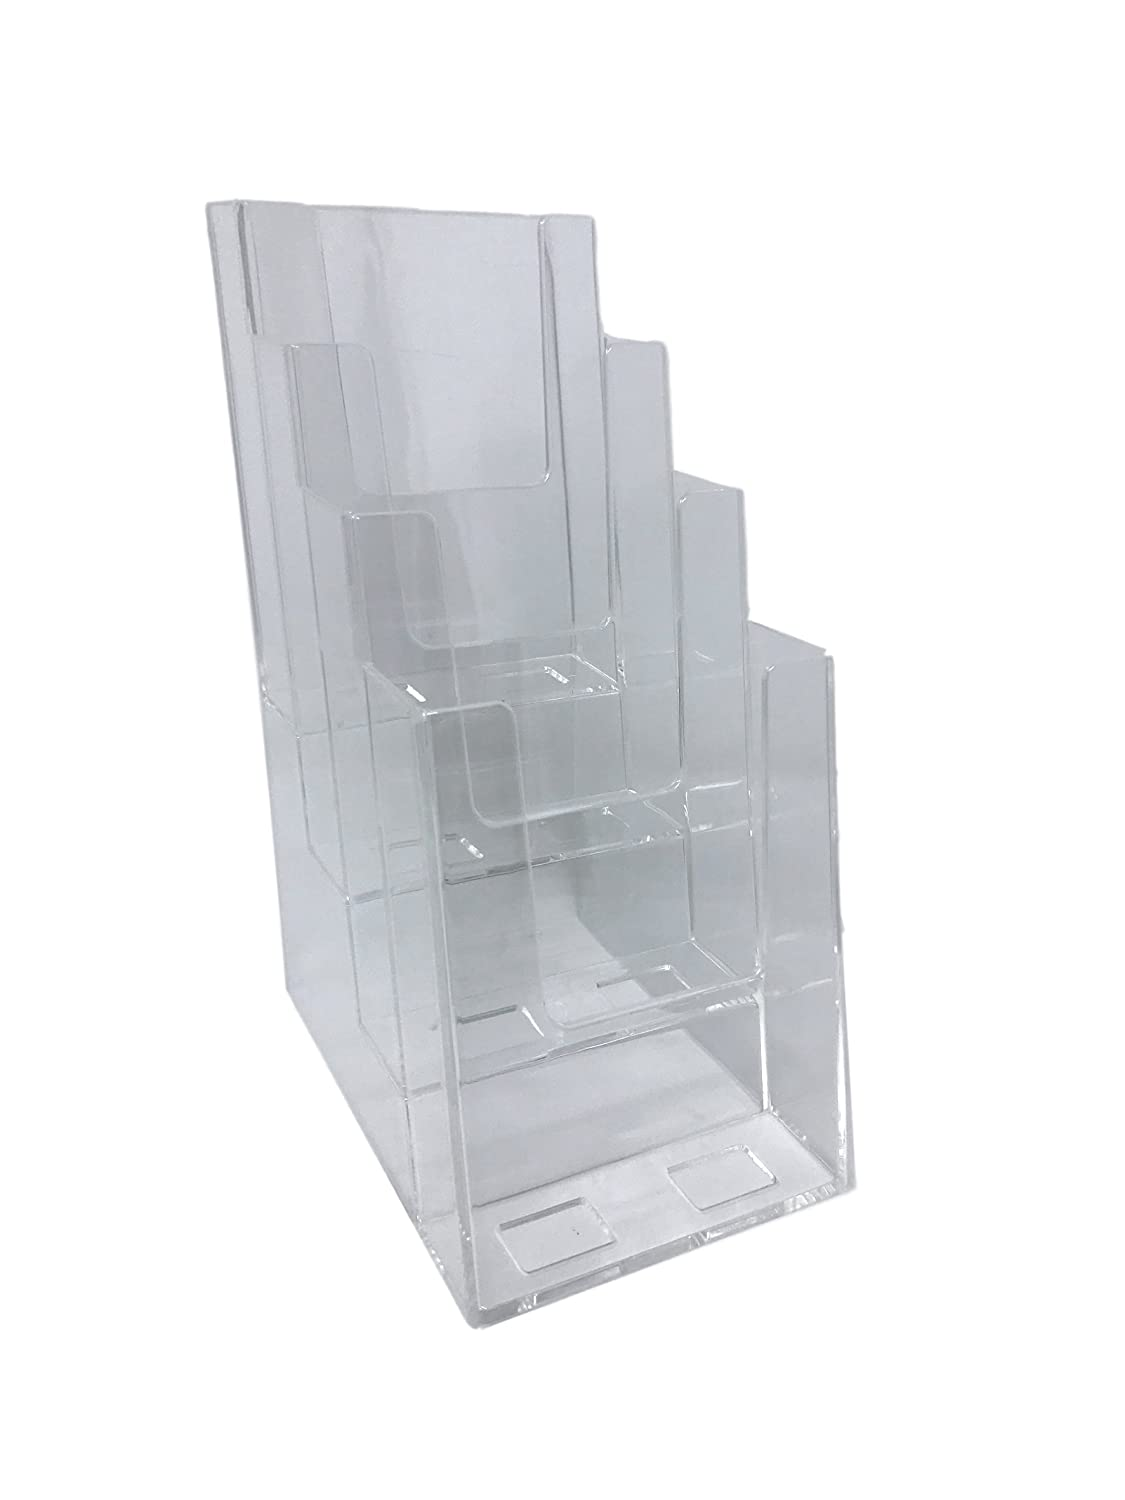 Dazzling Displays 4-Tier 4 x 9 Tri-Fold Brochure Holder Inc. BHD-4T4X9-1